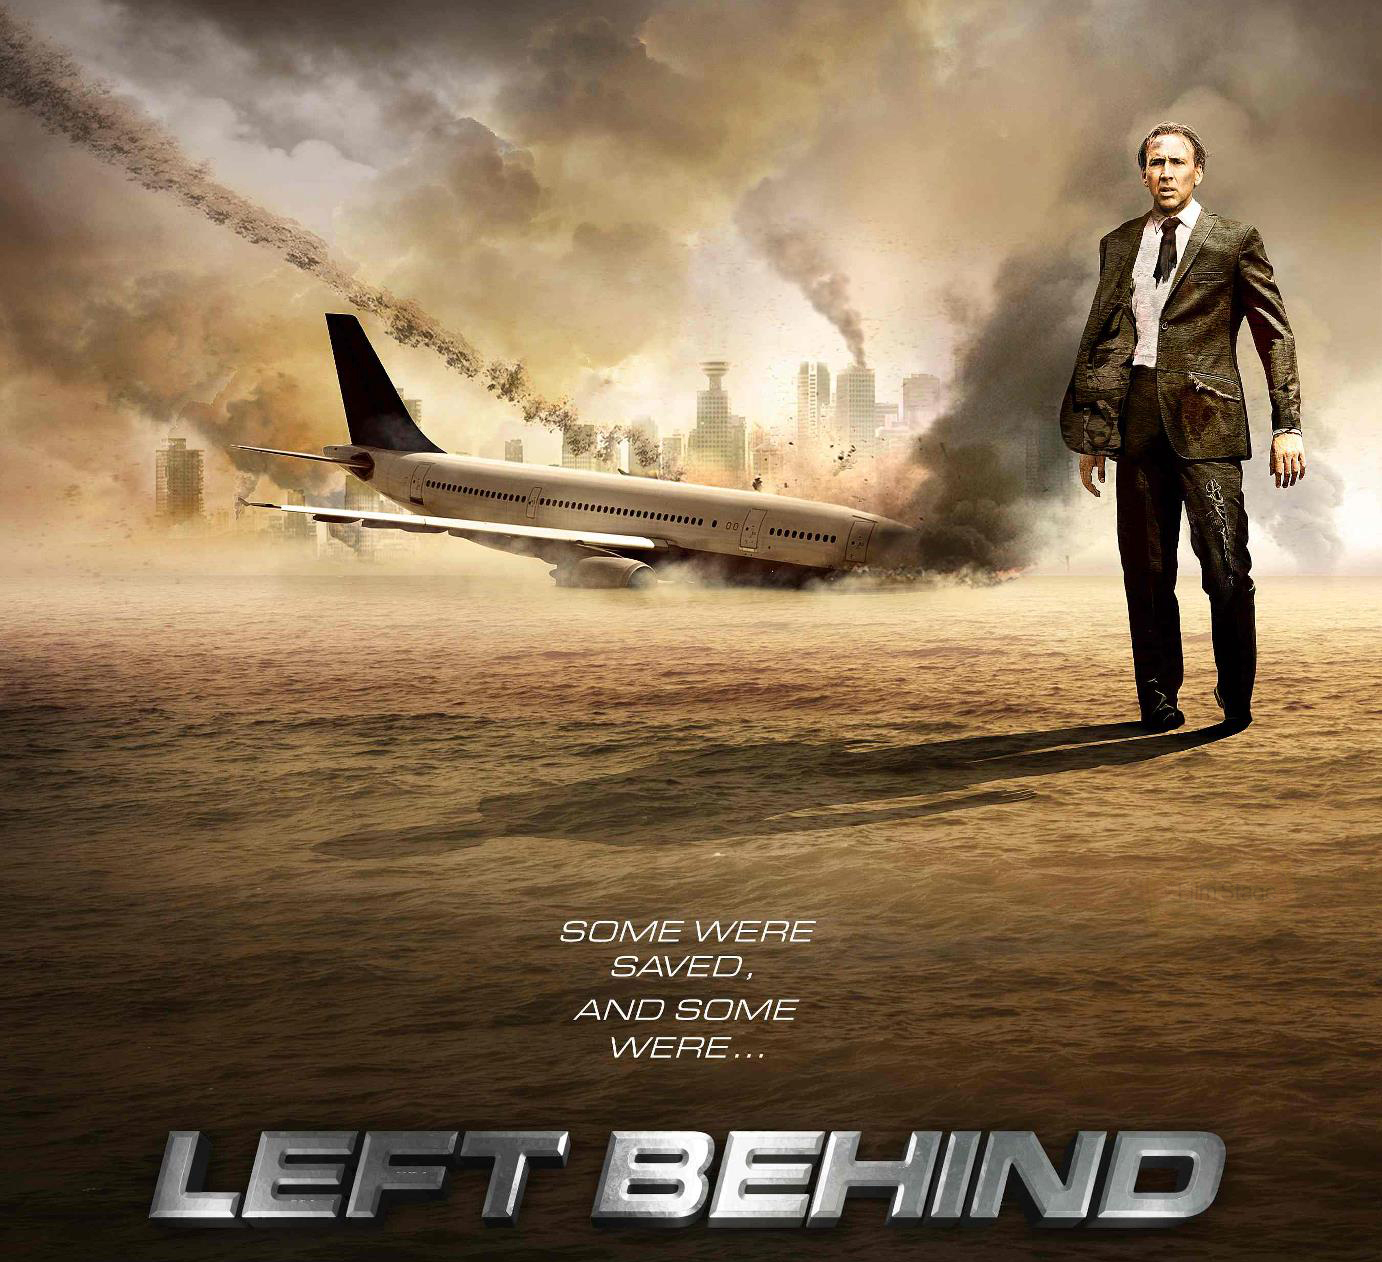 https://thefilmstage.com/news/nicolas-cage-gets-his-own-taken-with-tokarev-first-poster-for-his-left-behind-reboot/